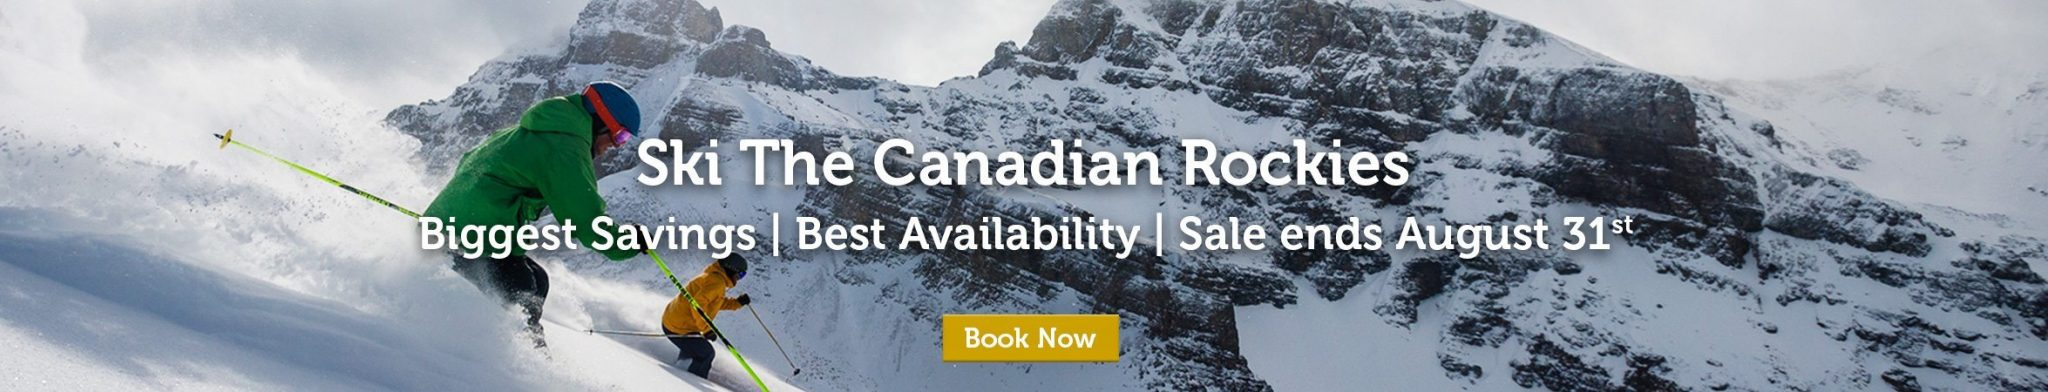 Biggest Savings | Best Availability | Sale Ends August 31